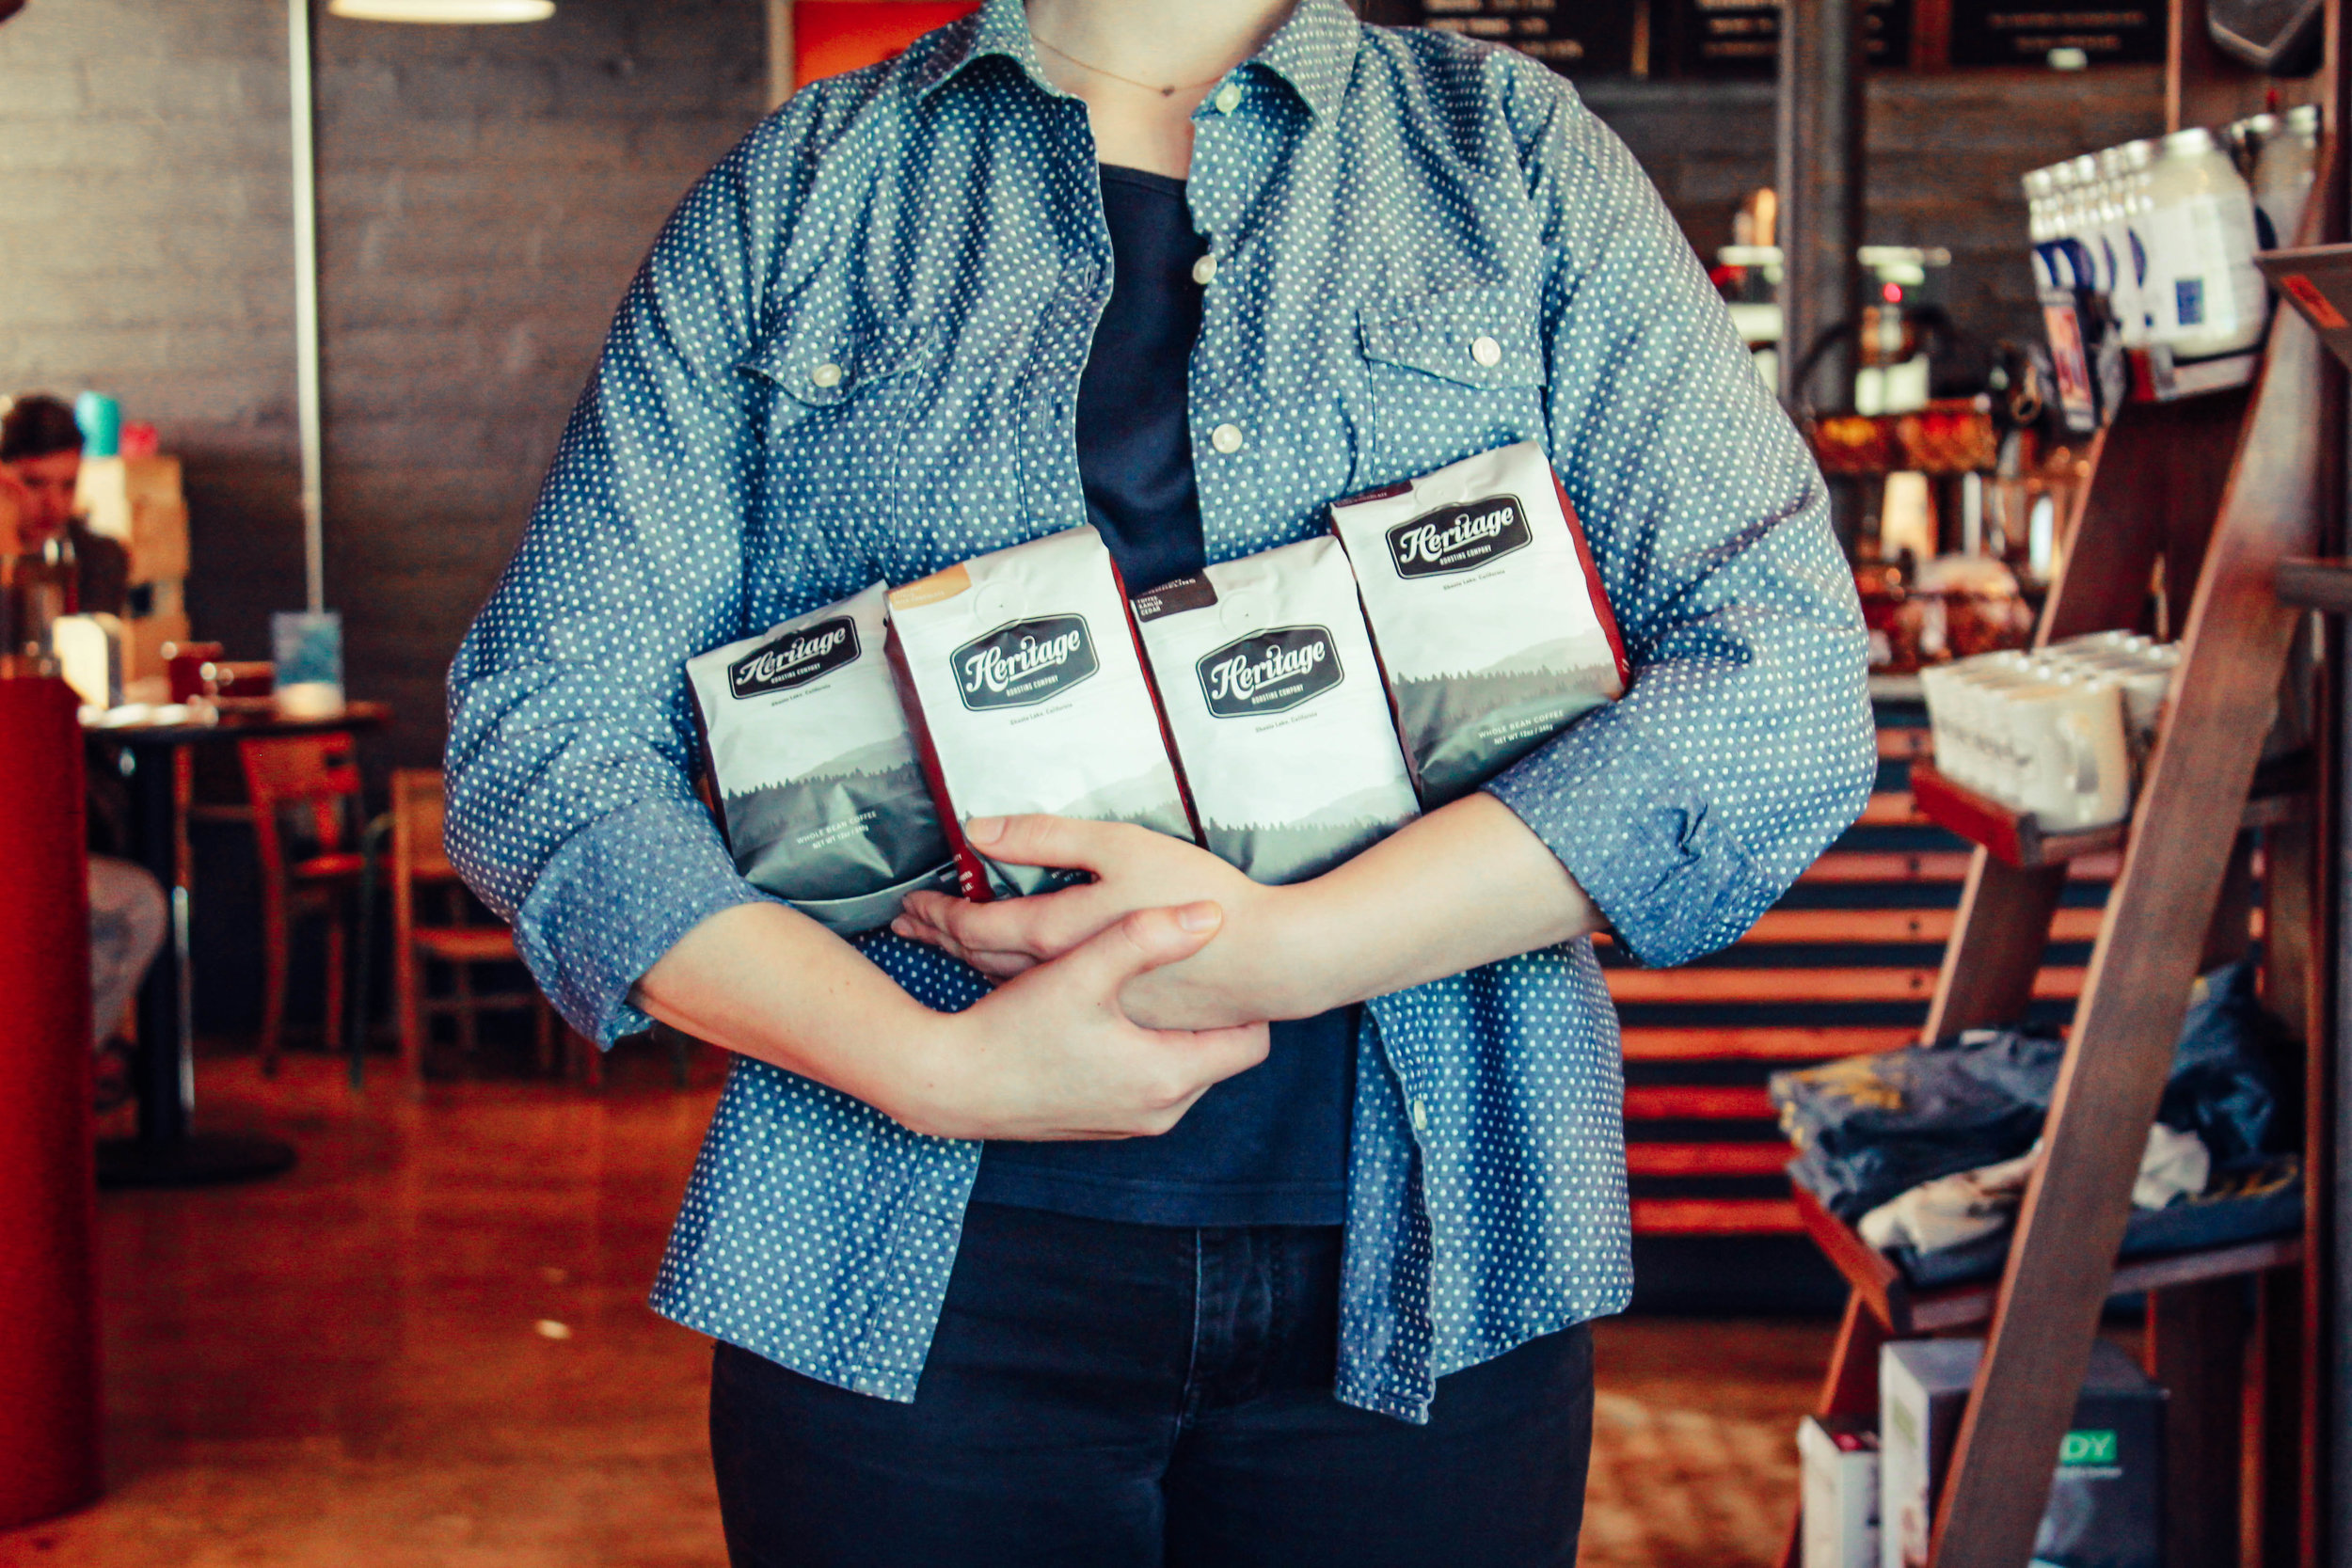 Coffee Club is Heritage Roasting Co's Monthly Coffee Subscription where you can have 1, 2, or 4 Bags of Whole Bean Coffee Shipped out to you - in or out of the Northern California region!